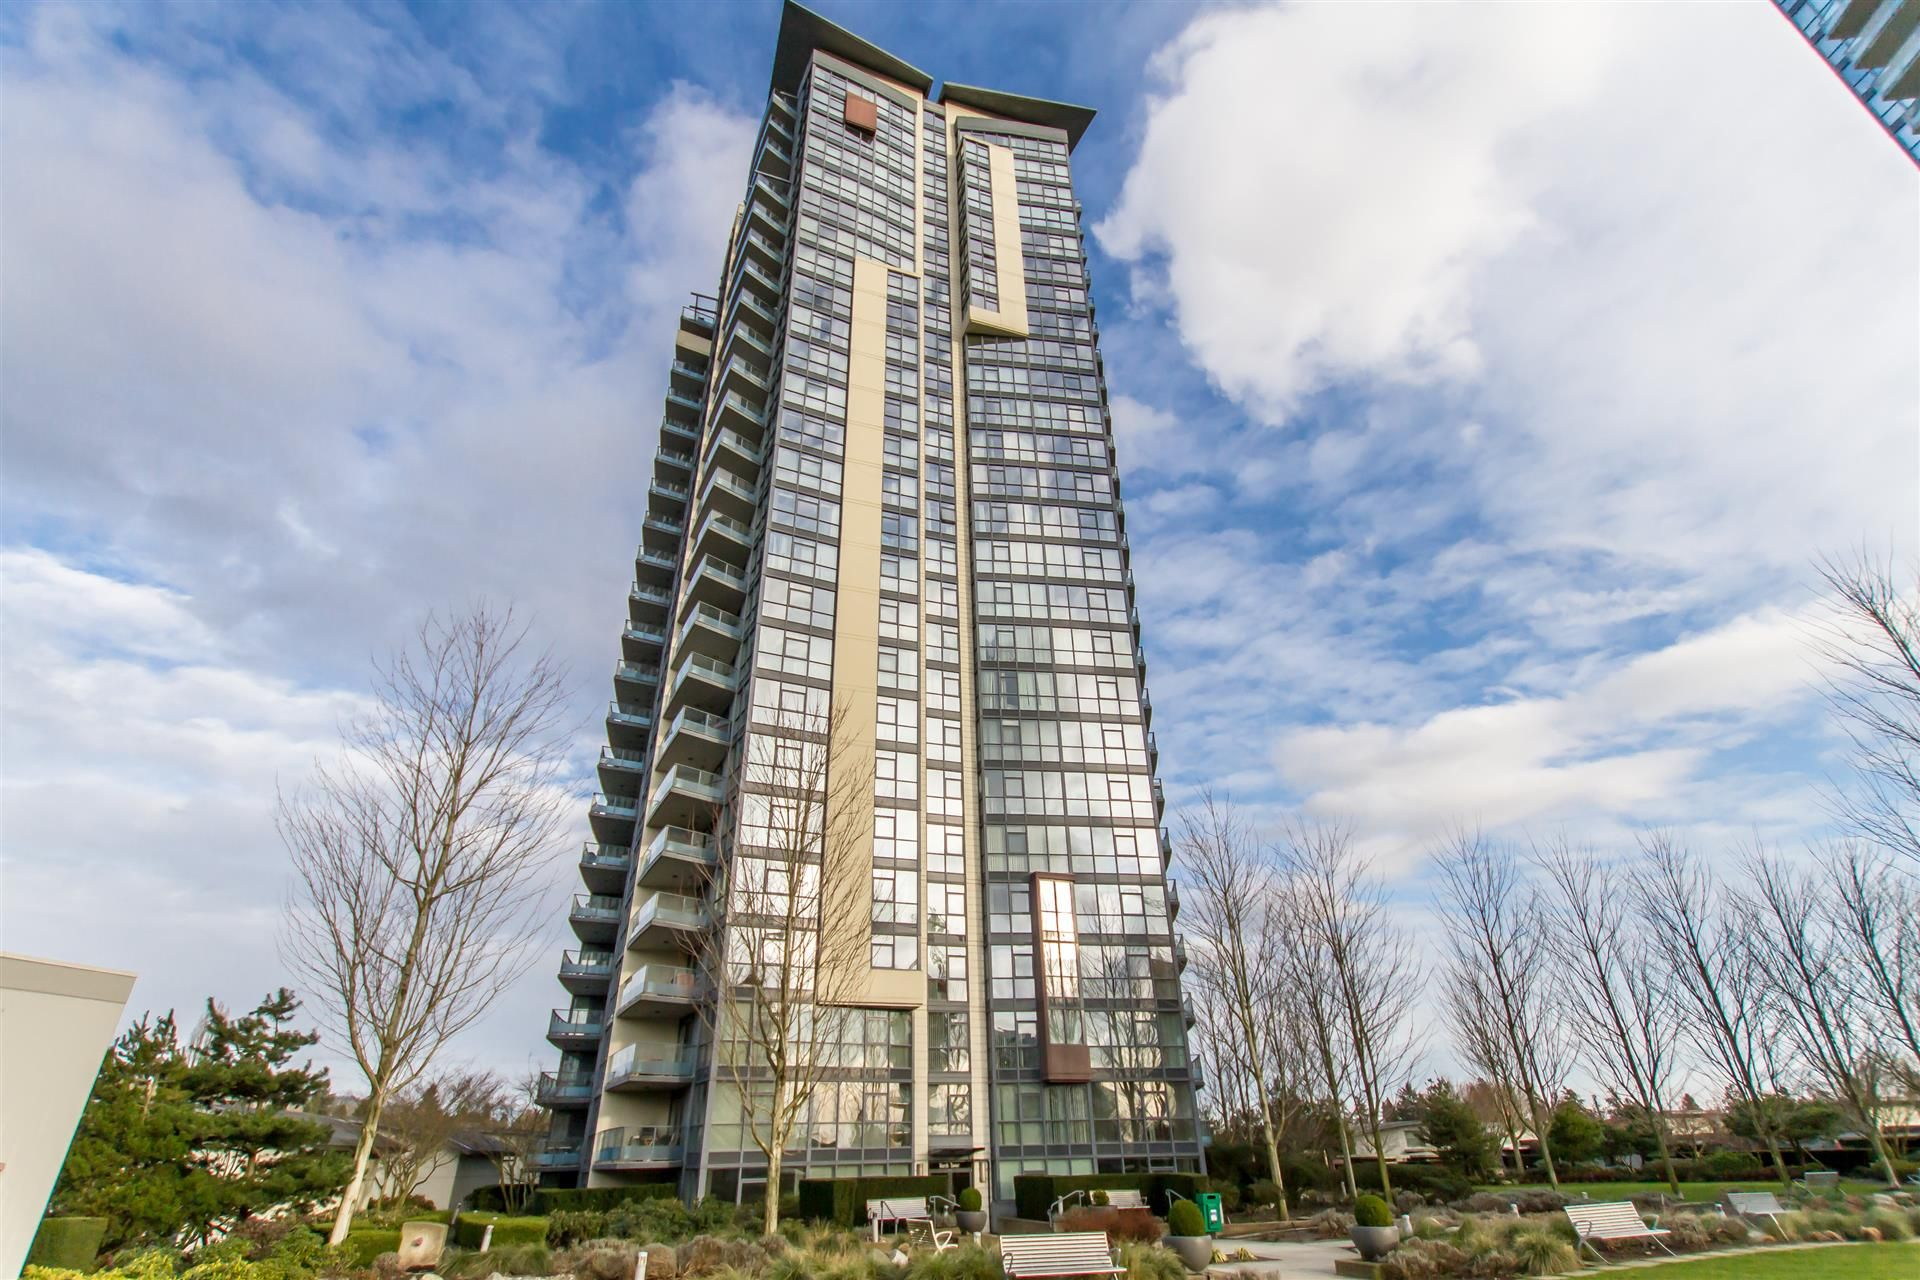 Main Photo: 902-2225 Holdom Ave in Burnaby: Condo for sale (Burnaby North)  : MLS®# R2463125